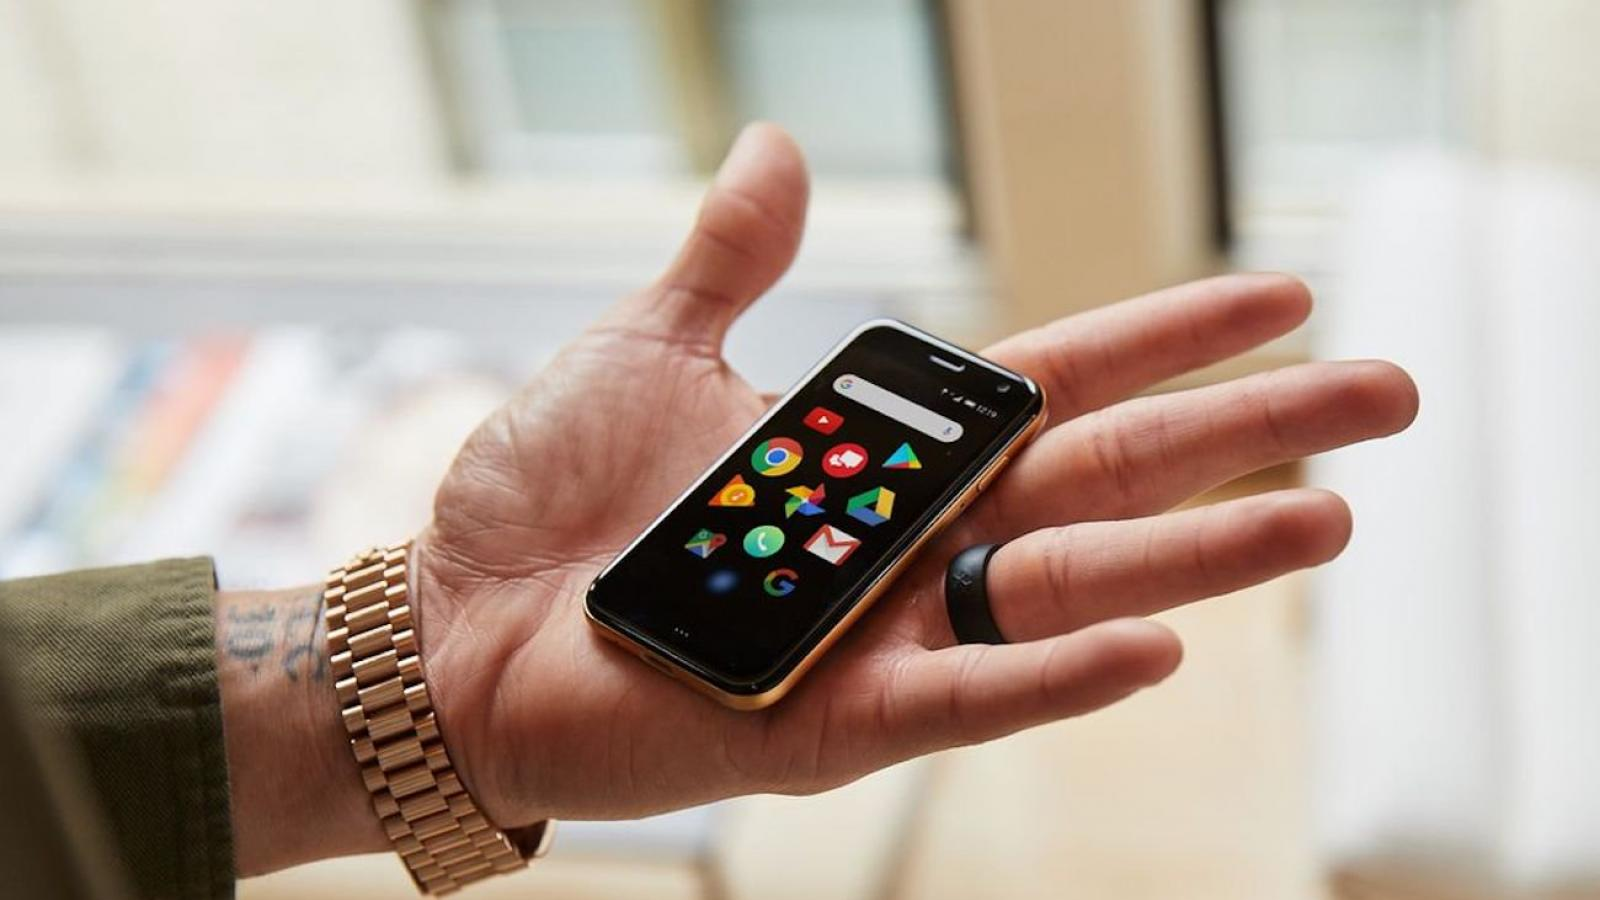 Cool Tech: Palm Tiny Smartphone, Atari Retro Handheld Console and more